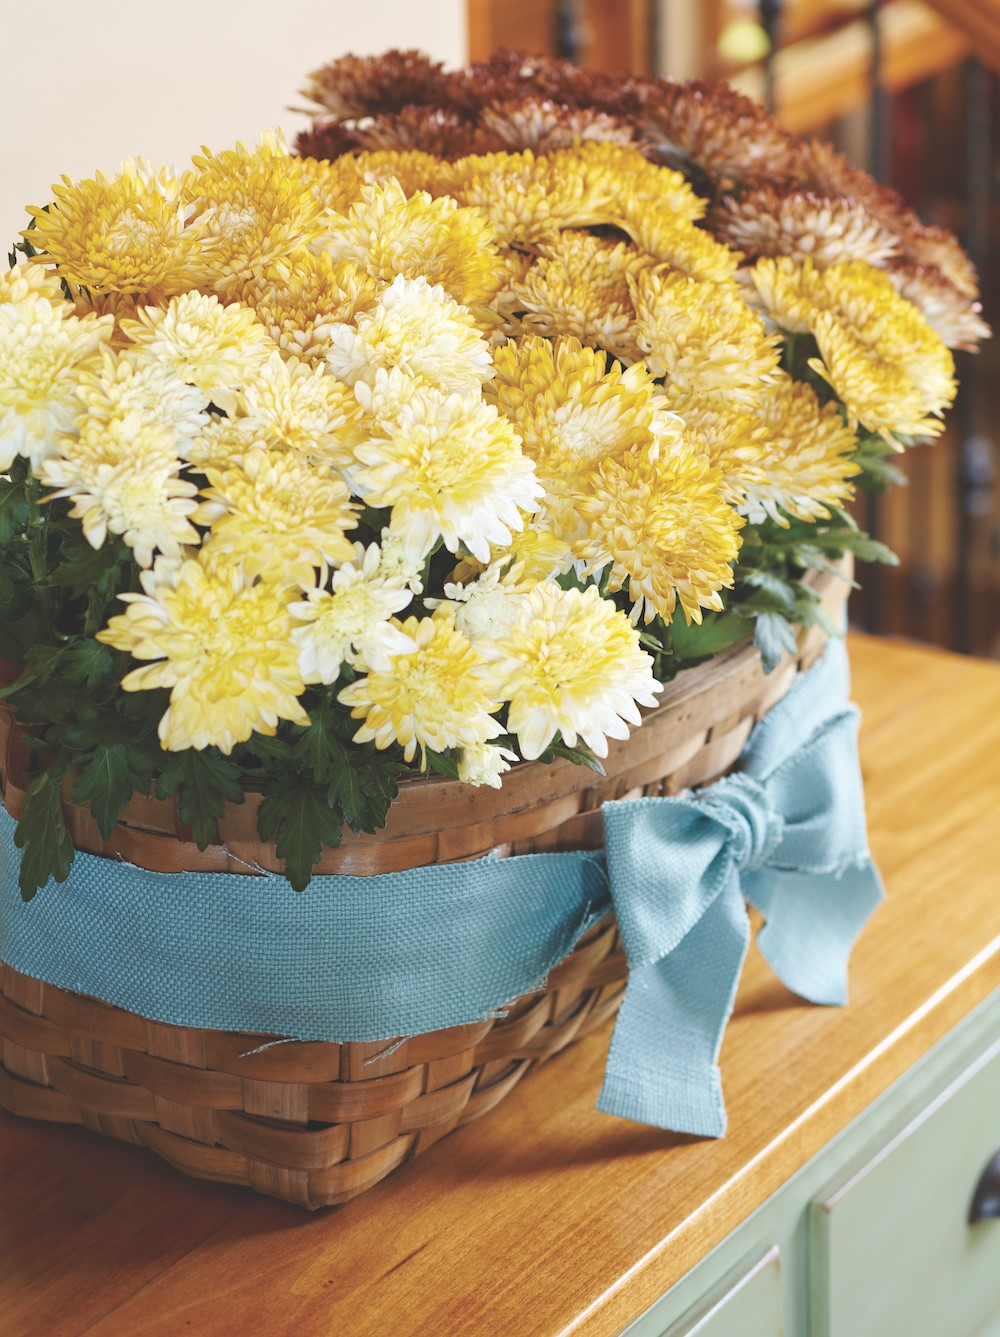 Yellow and burgundy mums in a woven basket with blue bow